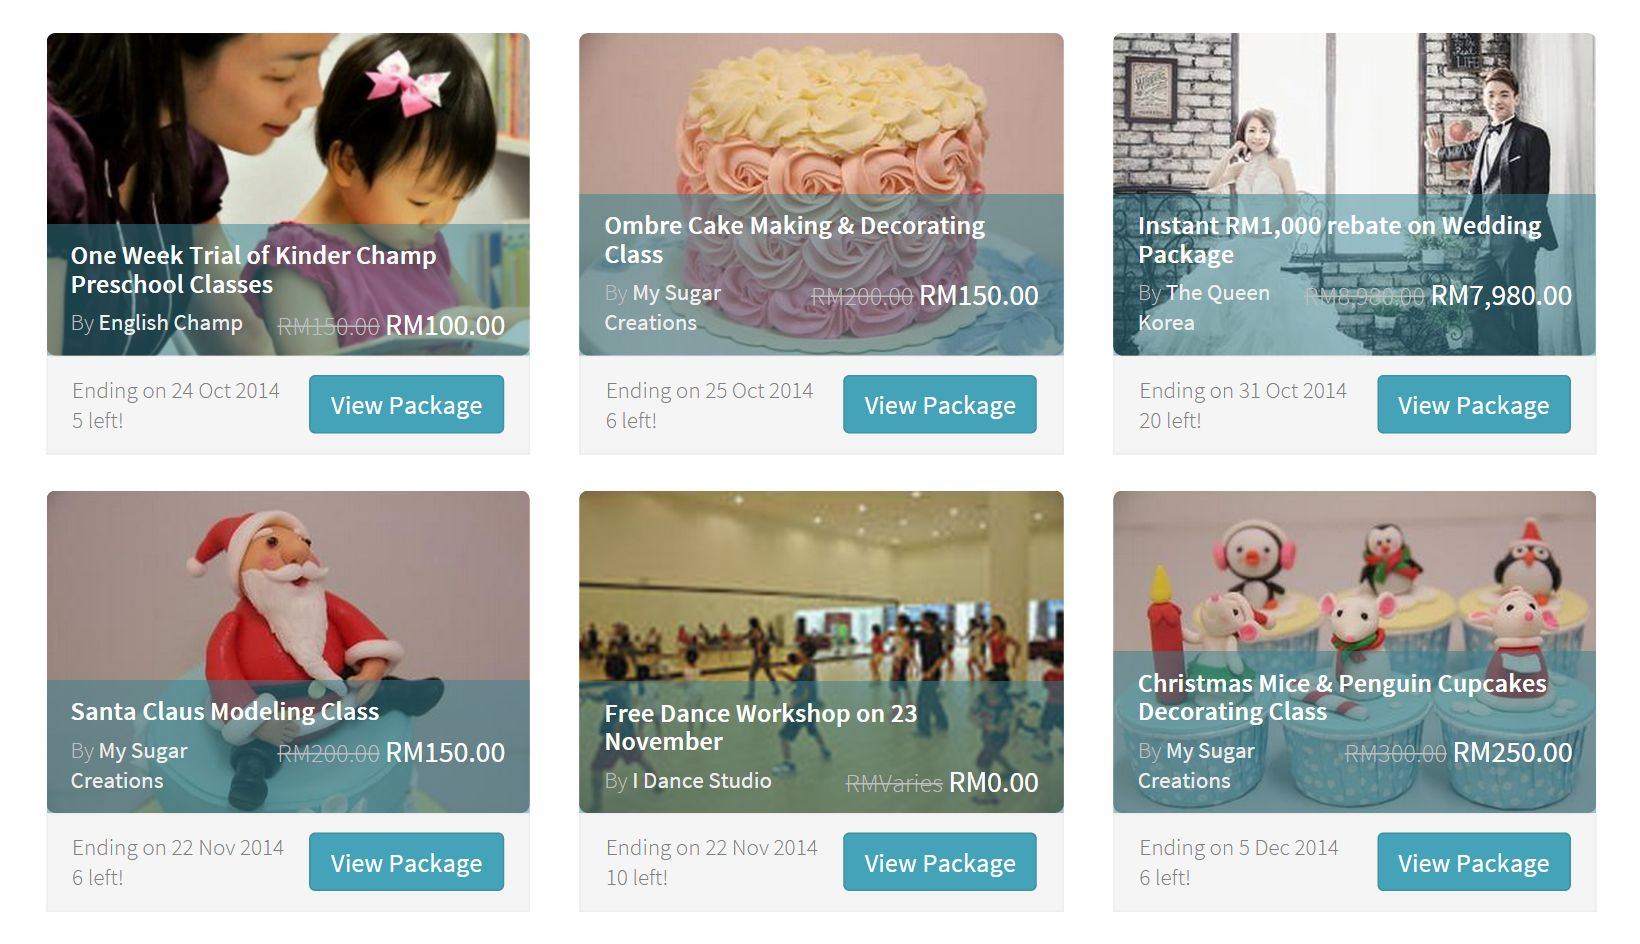 Thanks to our service providers, you can now get special promotions and freebies